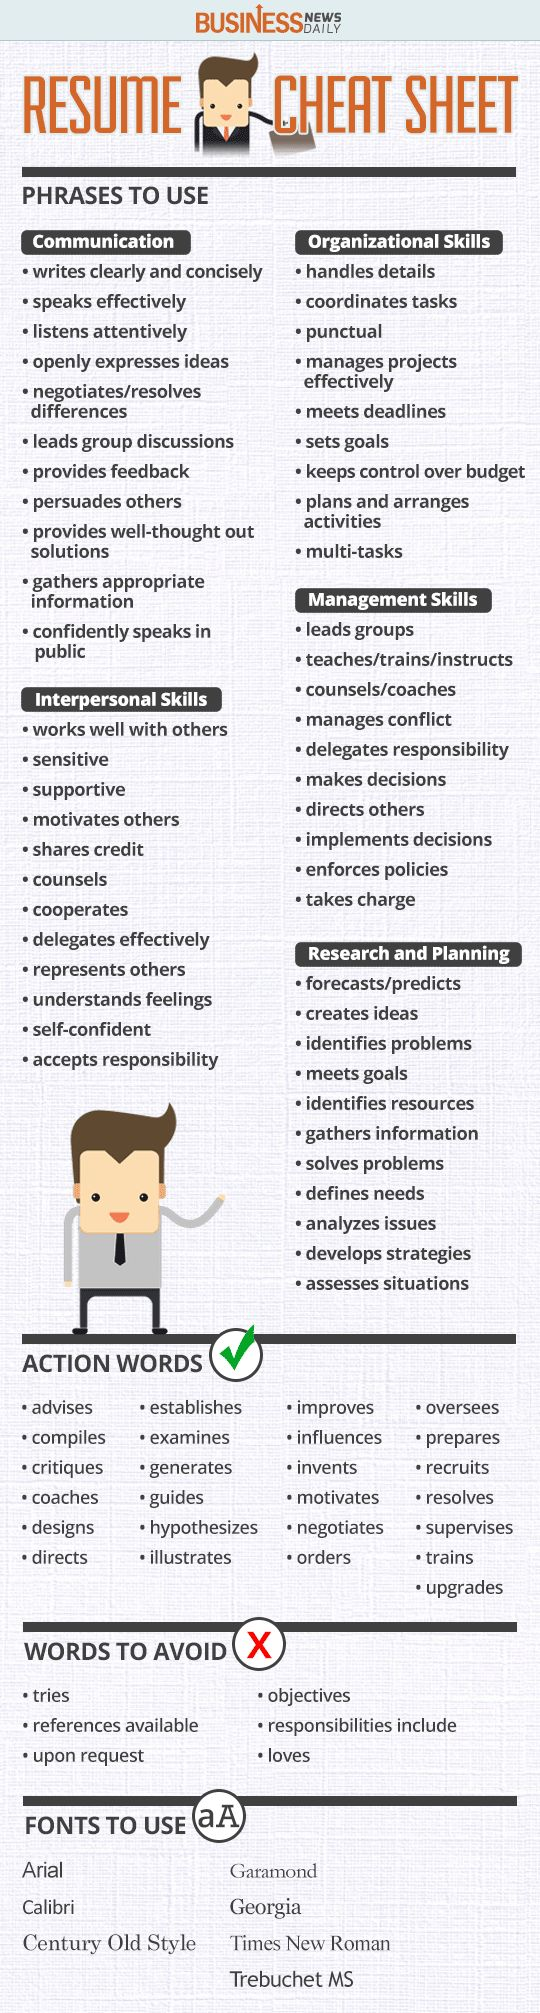 Opposenewapstandardsus  Ravishing  Ideas About Resume On Pinterest  Cv Format Resume Cv And  With Heavenly Resume Cheat Sheet Infographic Andrews Almost Done With A Complete Unit On Employment Which With Extraordinary Security Clearance On Resume Also Winway Resume Deluxe  In Addition Market Research Resume And Wordpress Resume As Well As Resume Qualities Additionally Resume Templates Latex From Pinterestcom With Opposenewapstandardsus  Heavenly  Ideas About Resume On Pinterest  Cv Format Resume Cv And  With Extraordinary Resume Cheat Sheet Infographic Andrews Almost Done With A Complete Unit On Employment Which And Ravishing Security Clearance On Resume Also Winway Resume Deluxe  In Addition Market Research Resume From Pinterestcom